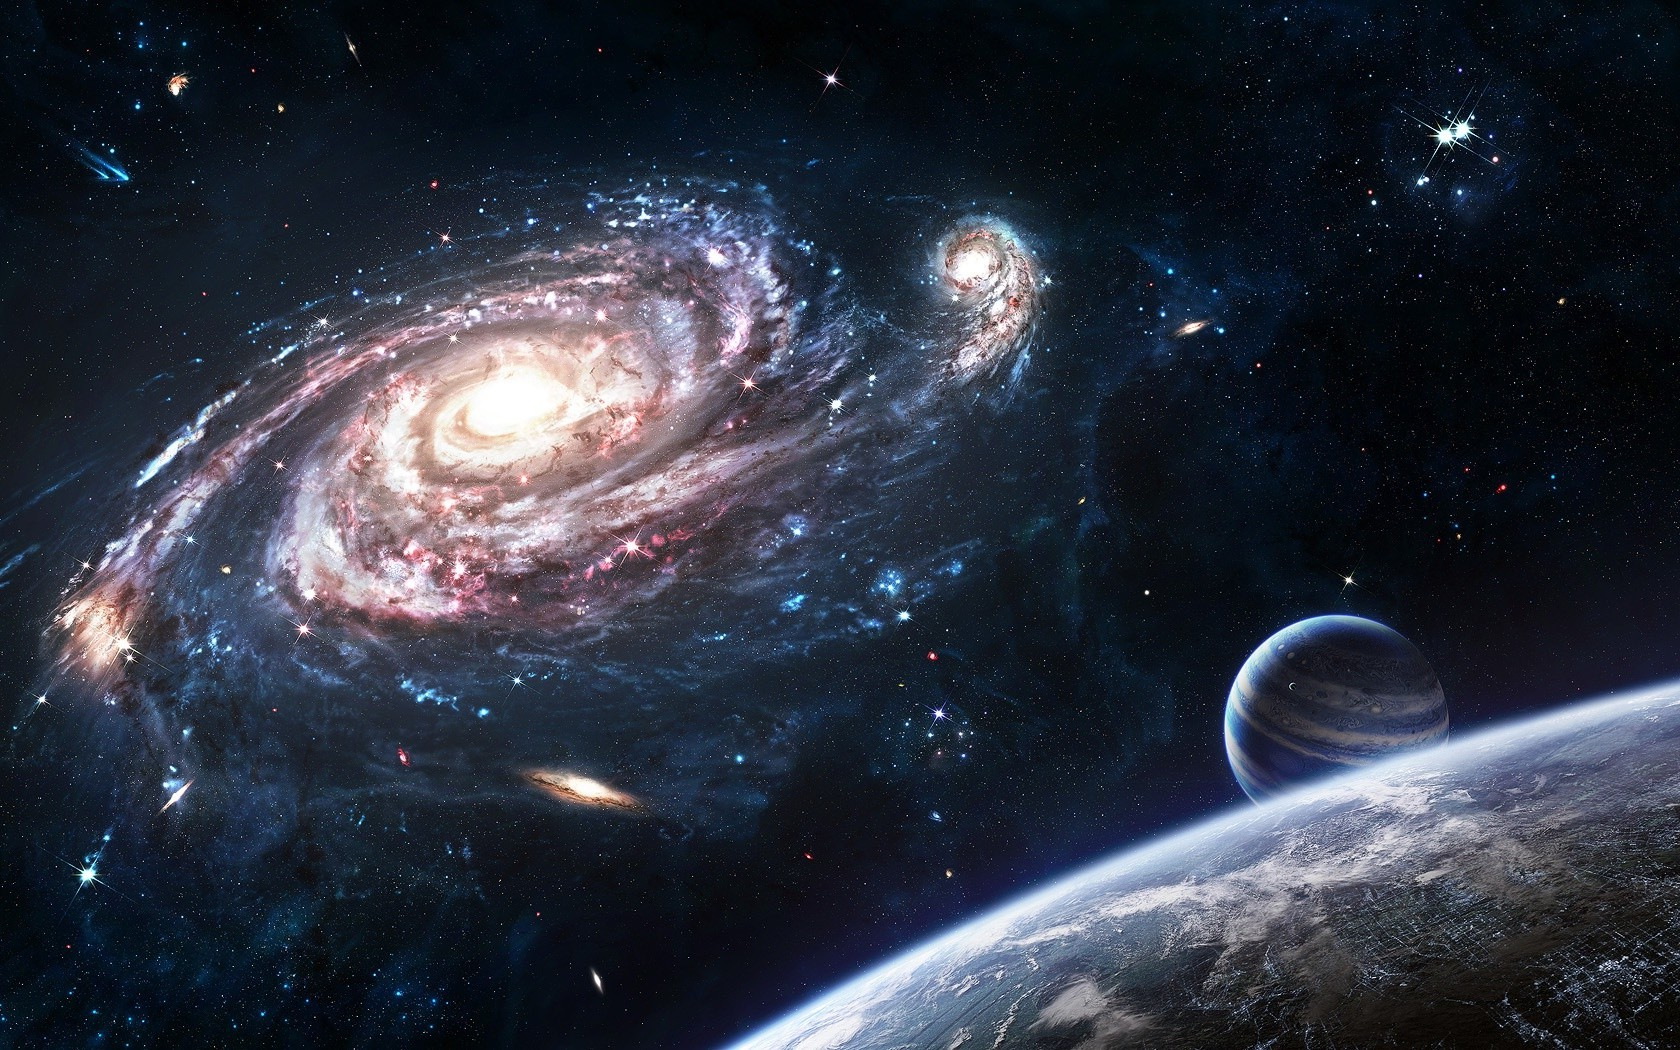 artwork, planet, spiral galaxy, space art wallpapers hd / desktop